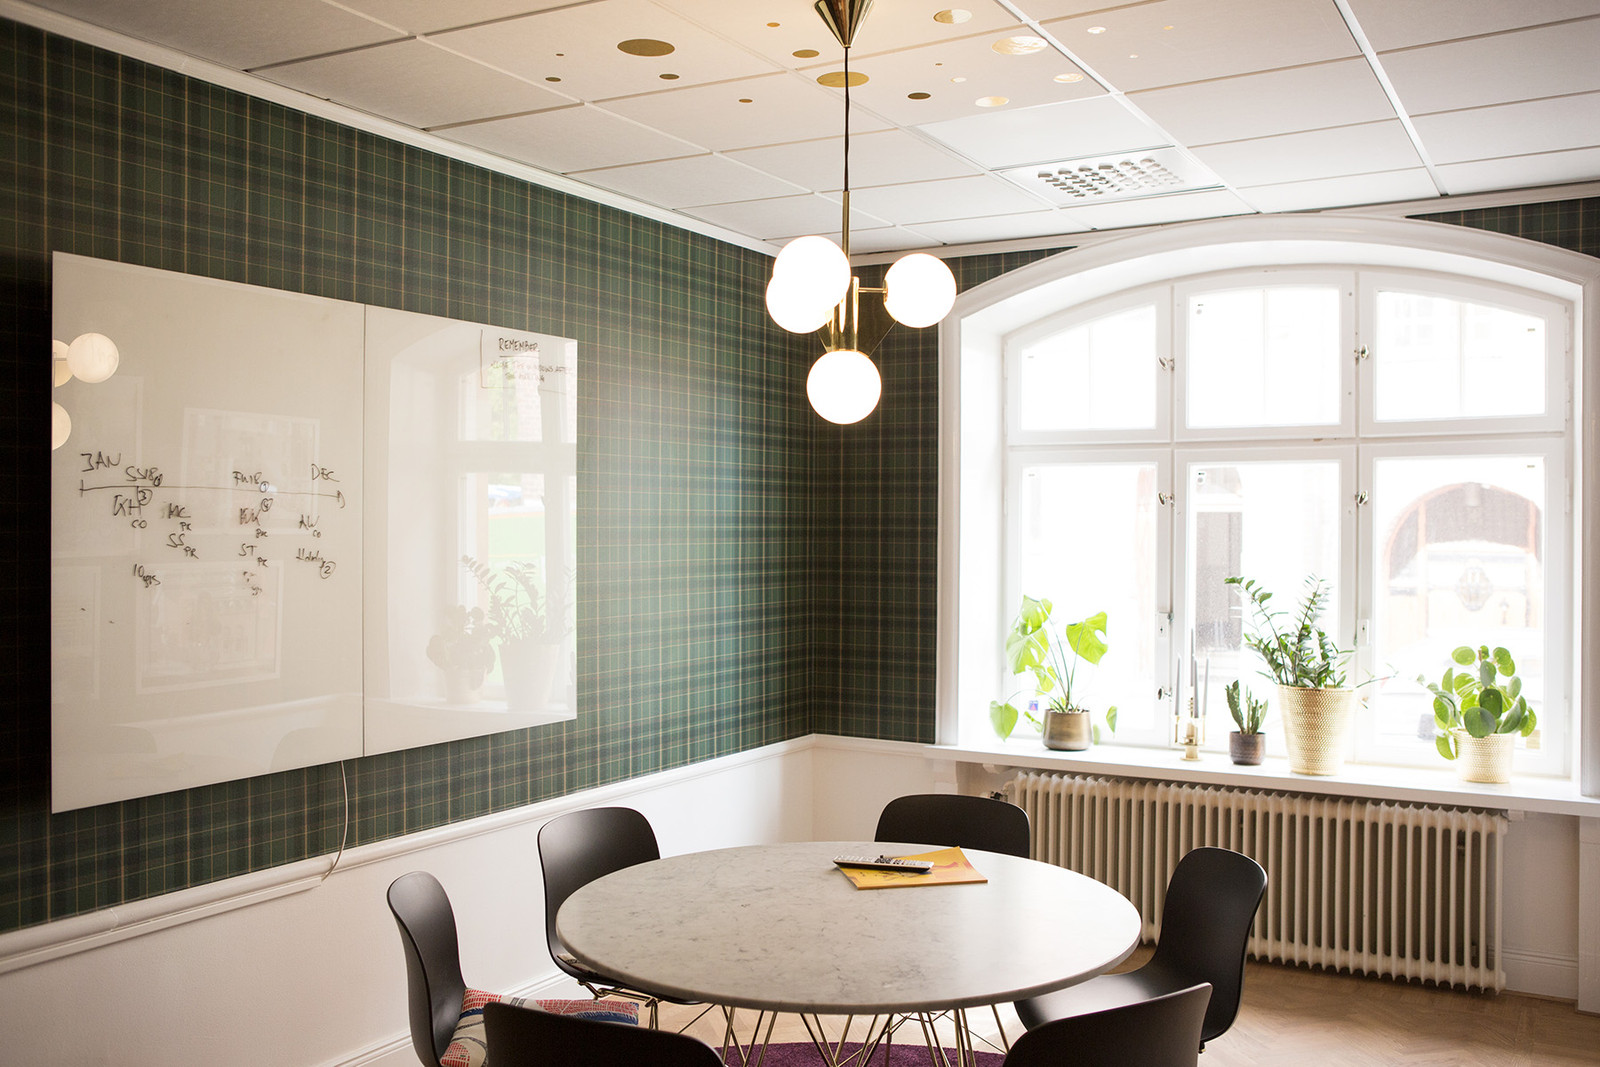 Happy Socks HQ Stockholm Sweden Office Interior